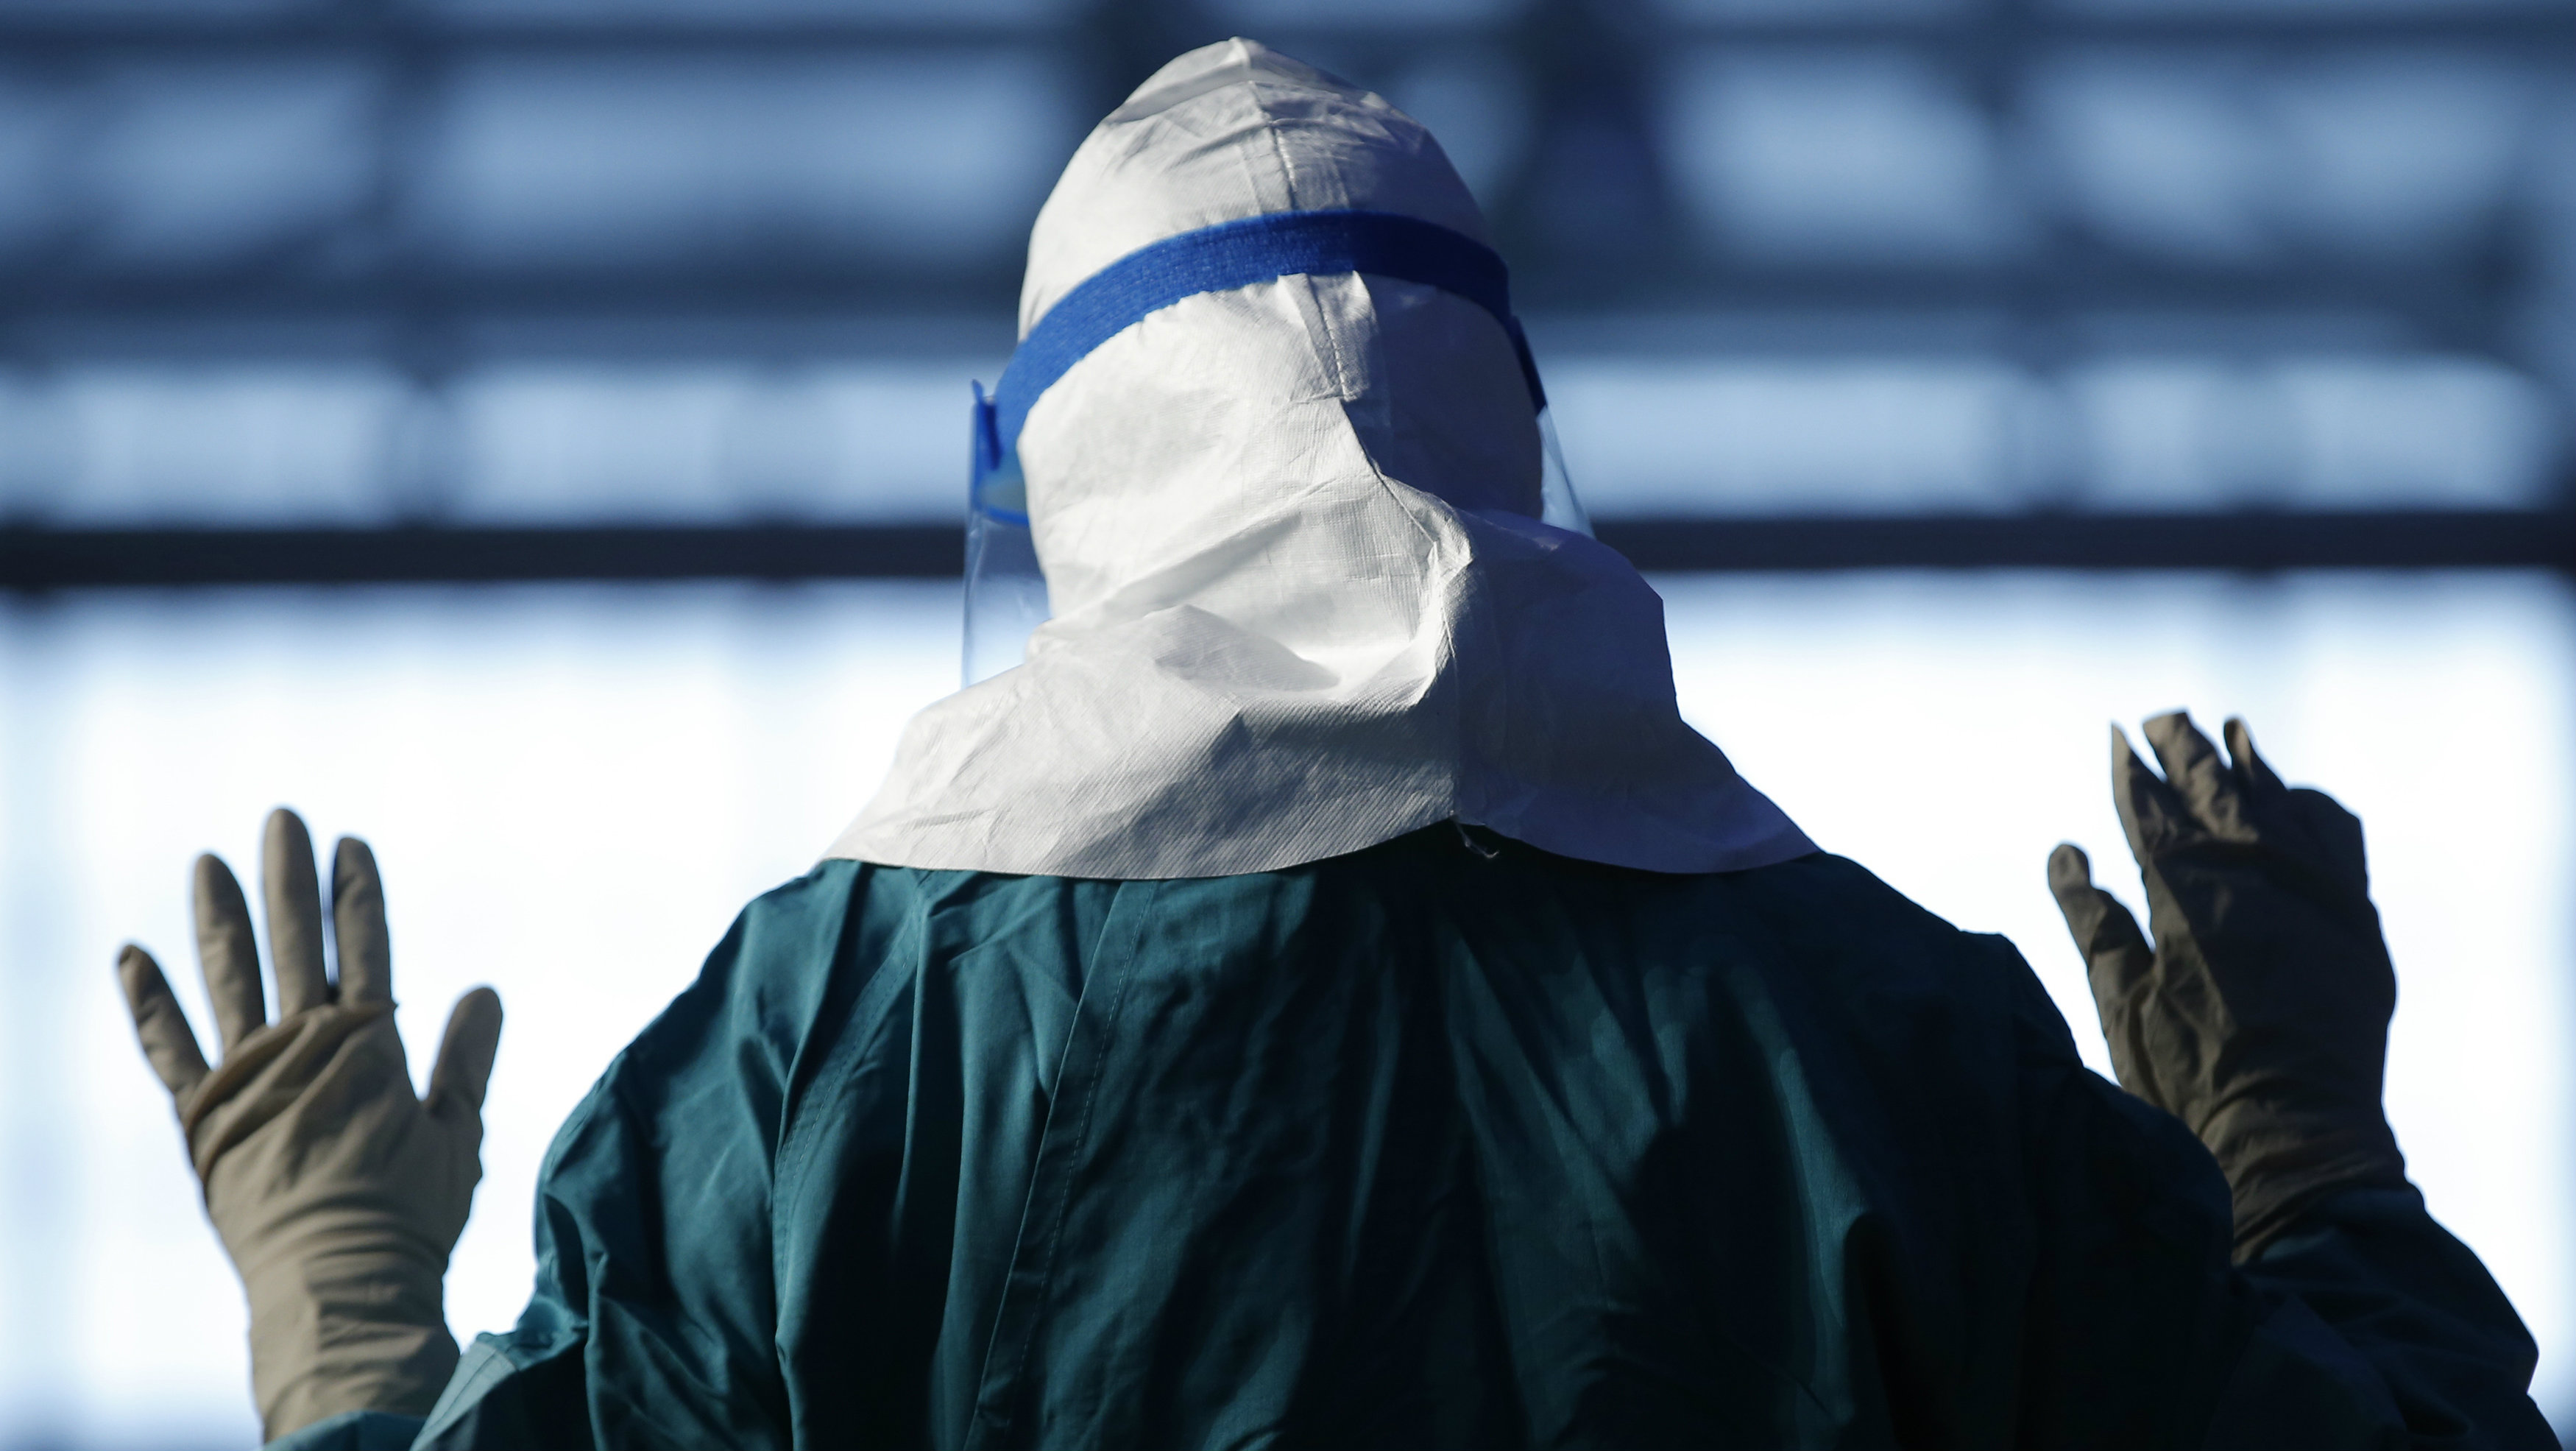 Nurse wearing protective clothing against infectious diseases